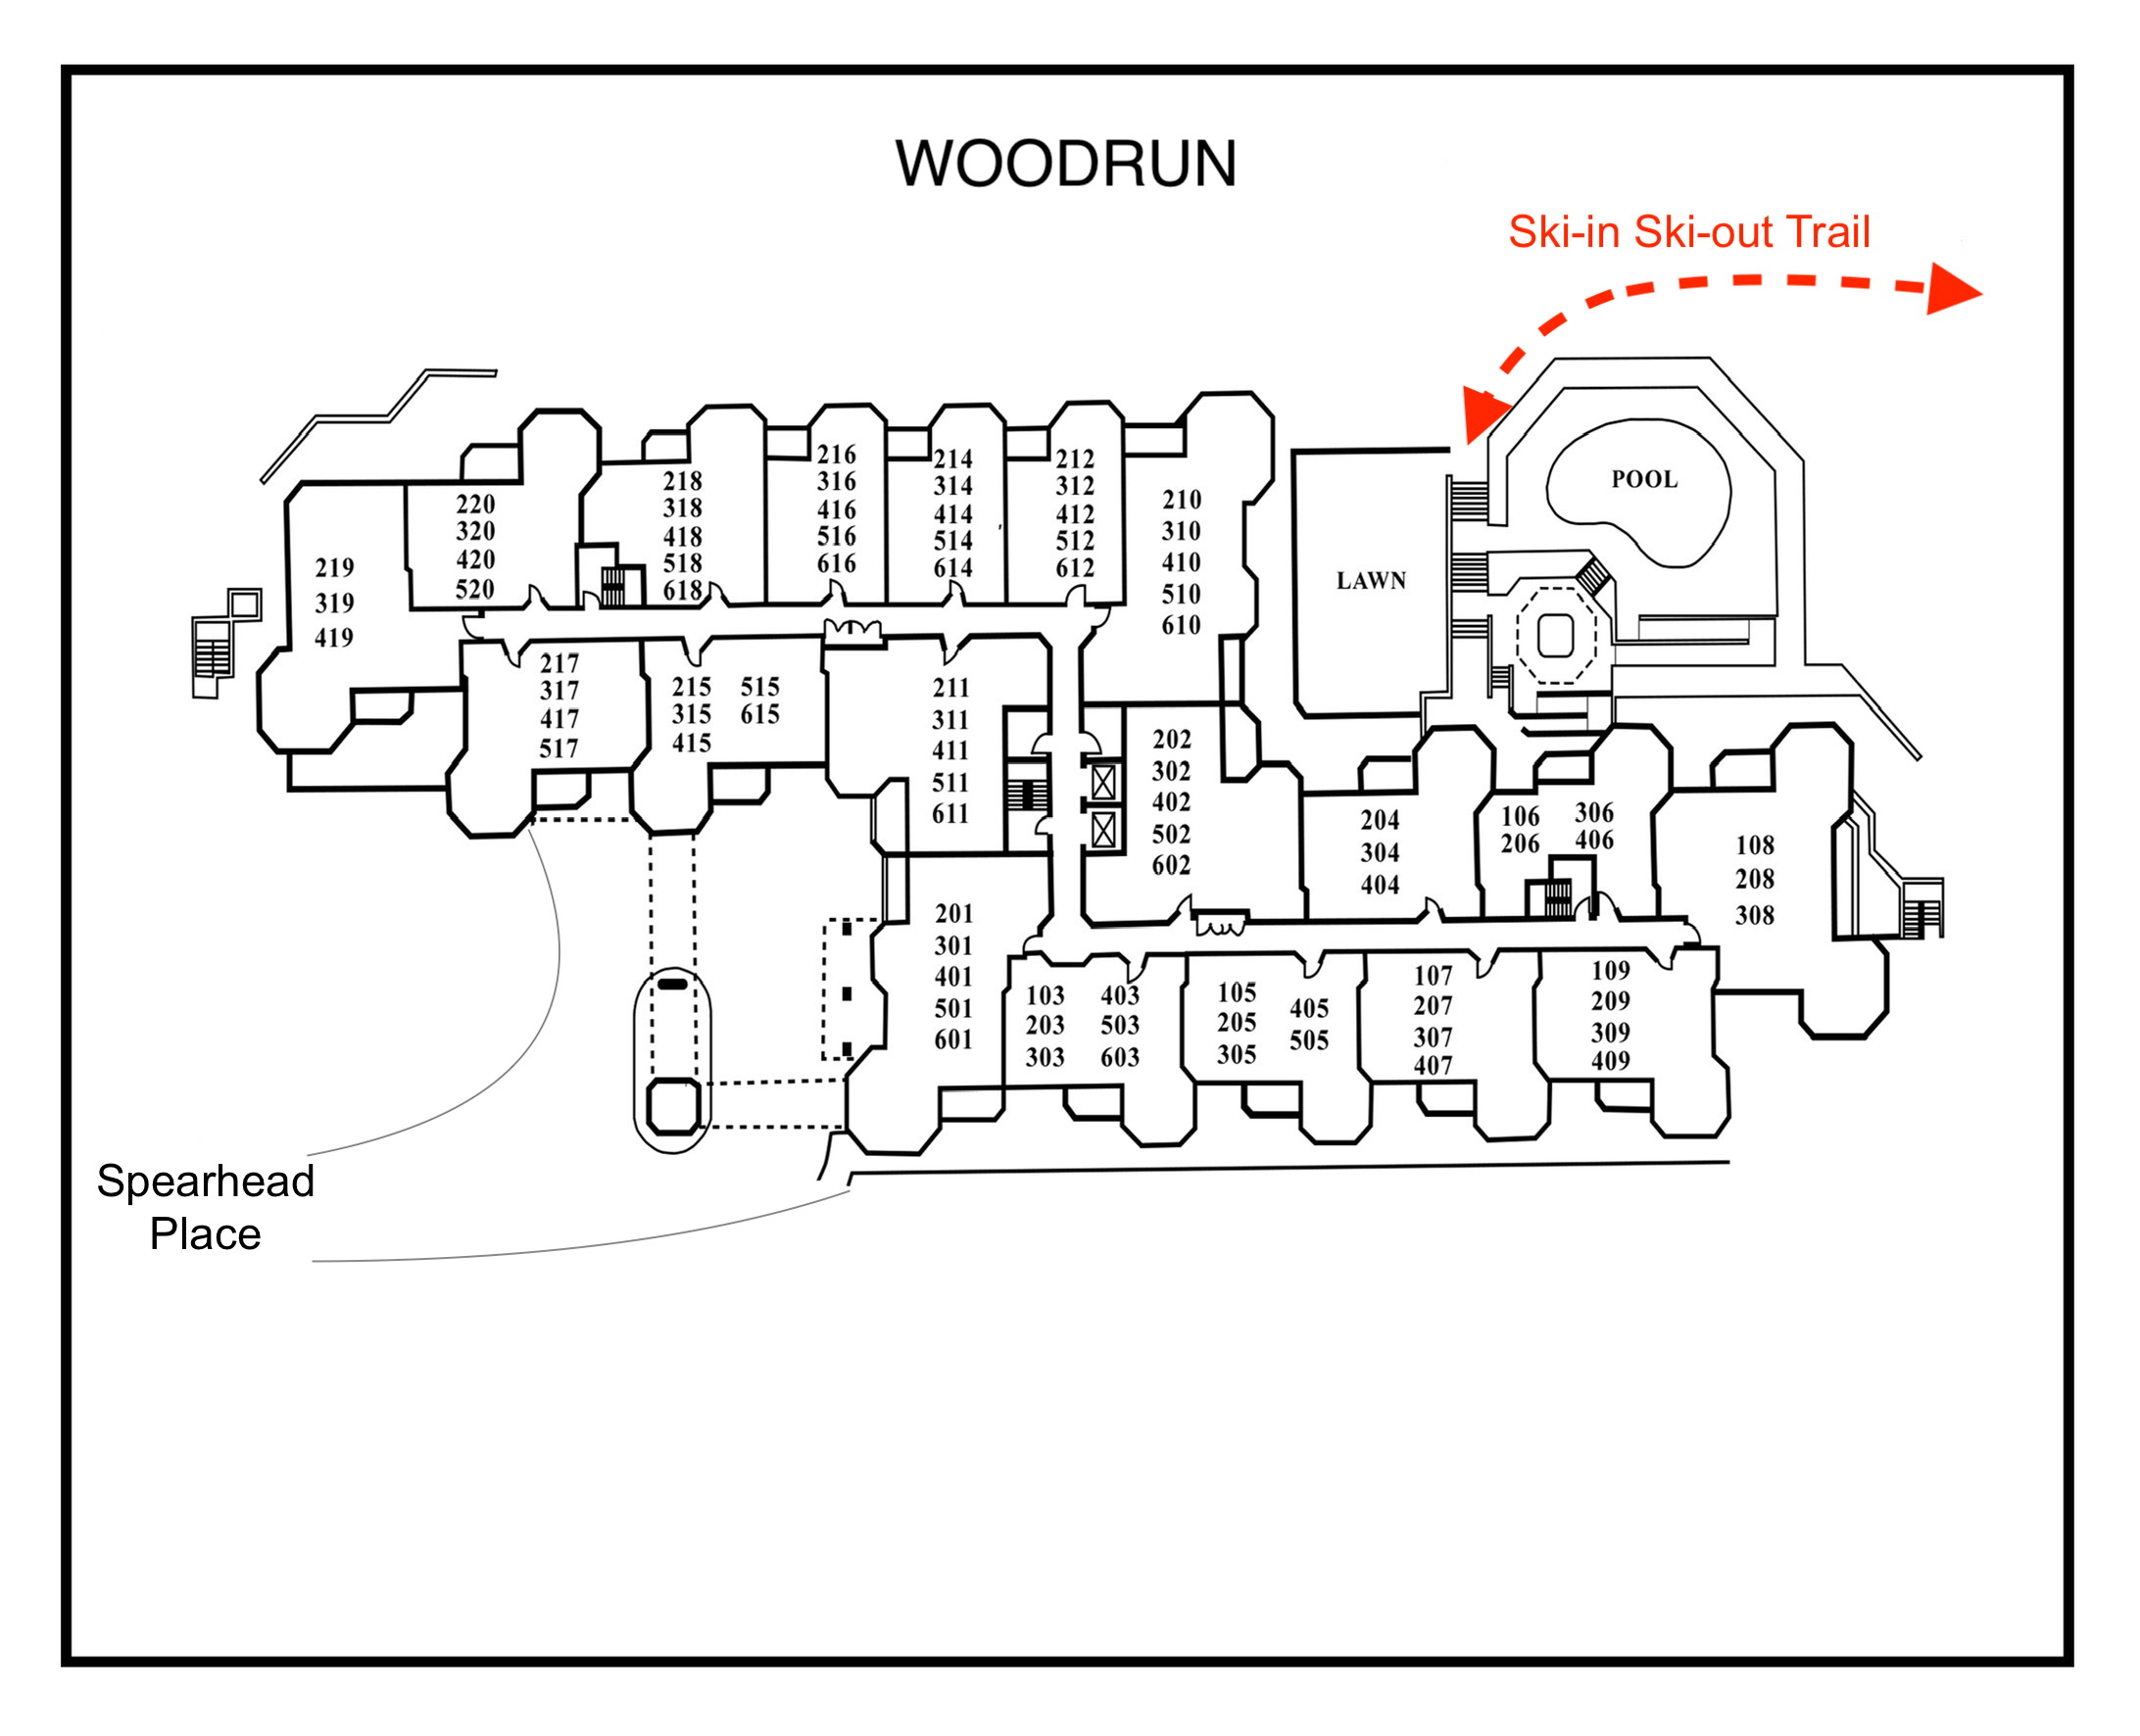 Woodrun---Numbers-ski in ski out trail marked in red